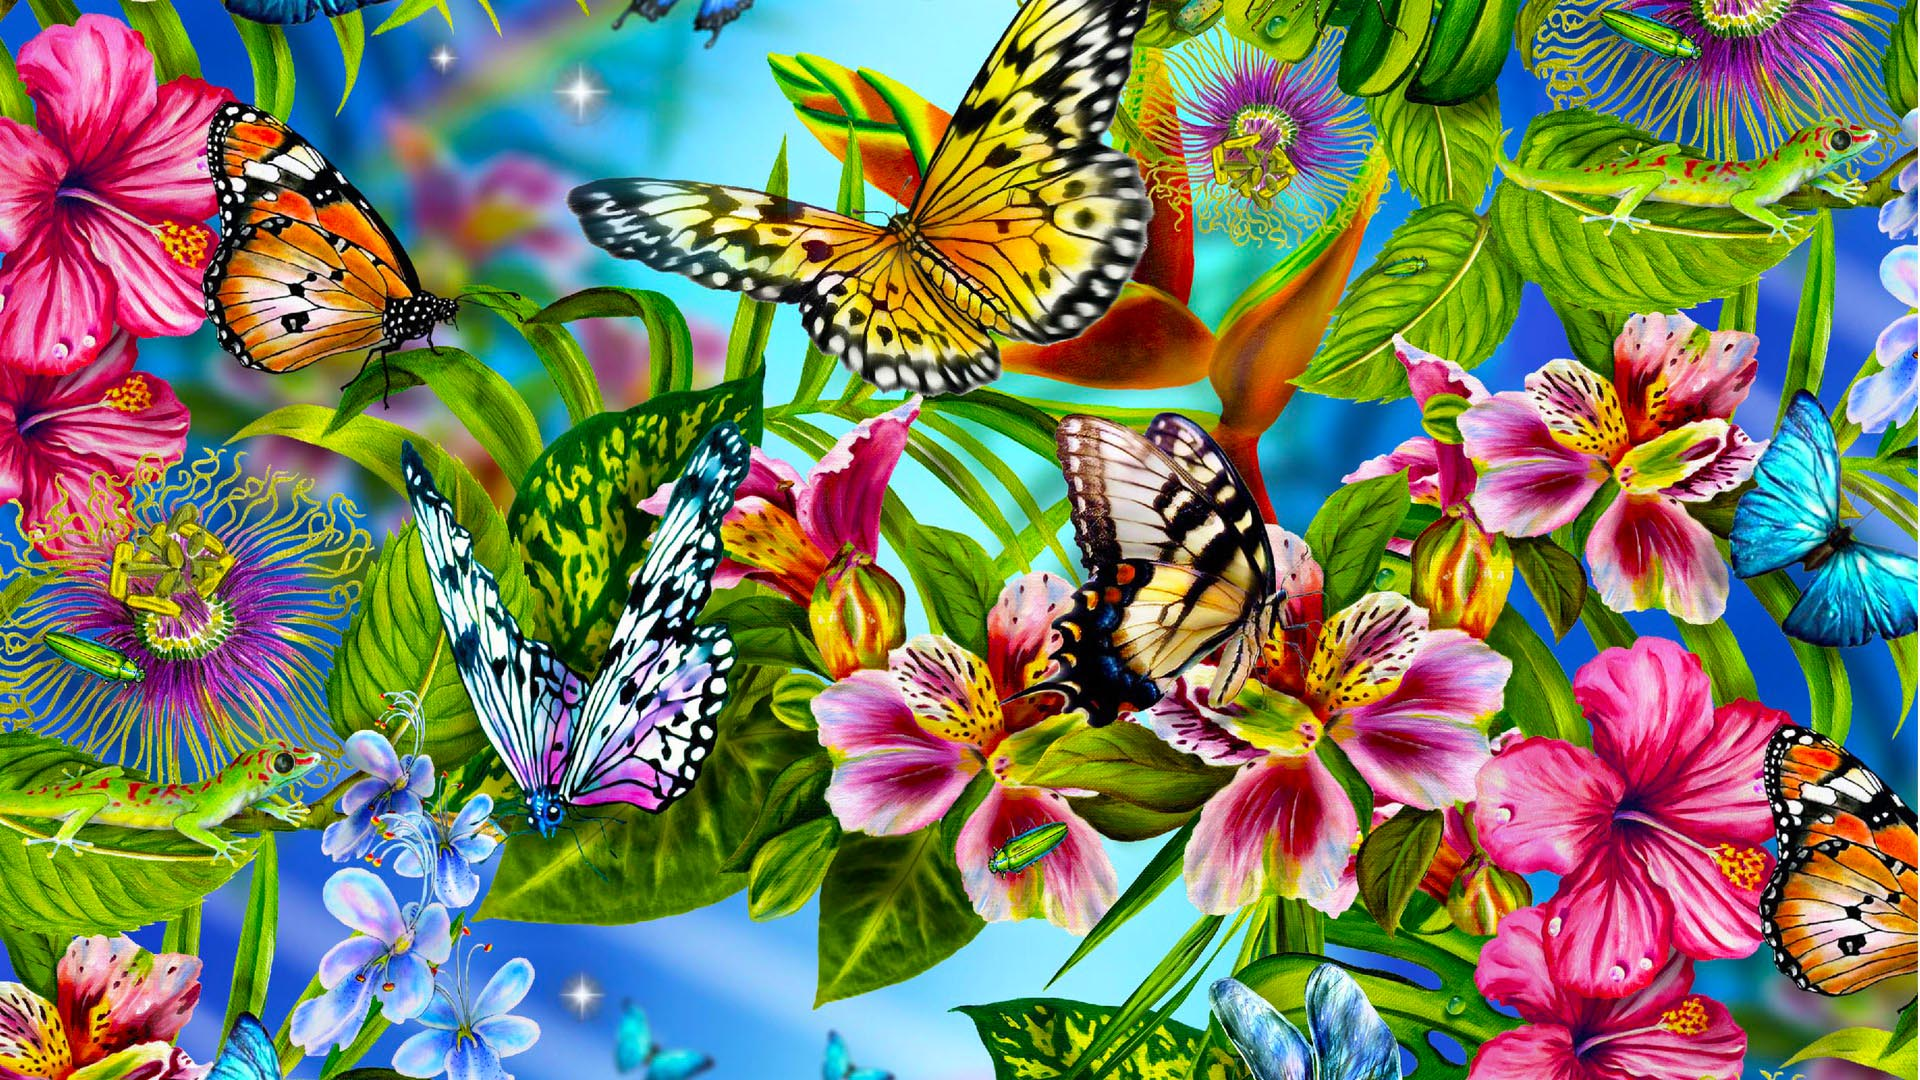 Abstract Butterfly Wallpapers HD Wallpaper 1920x1080